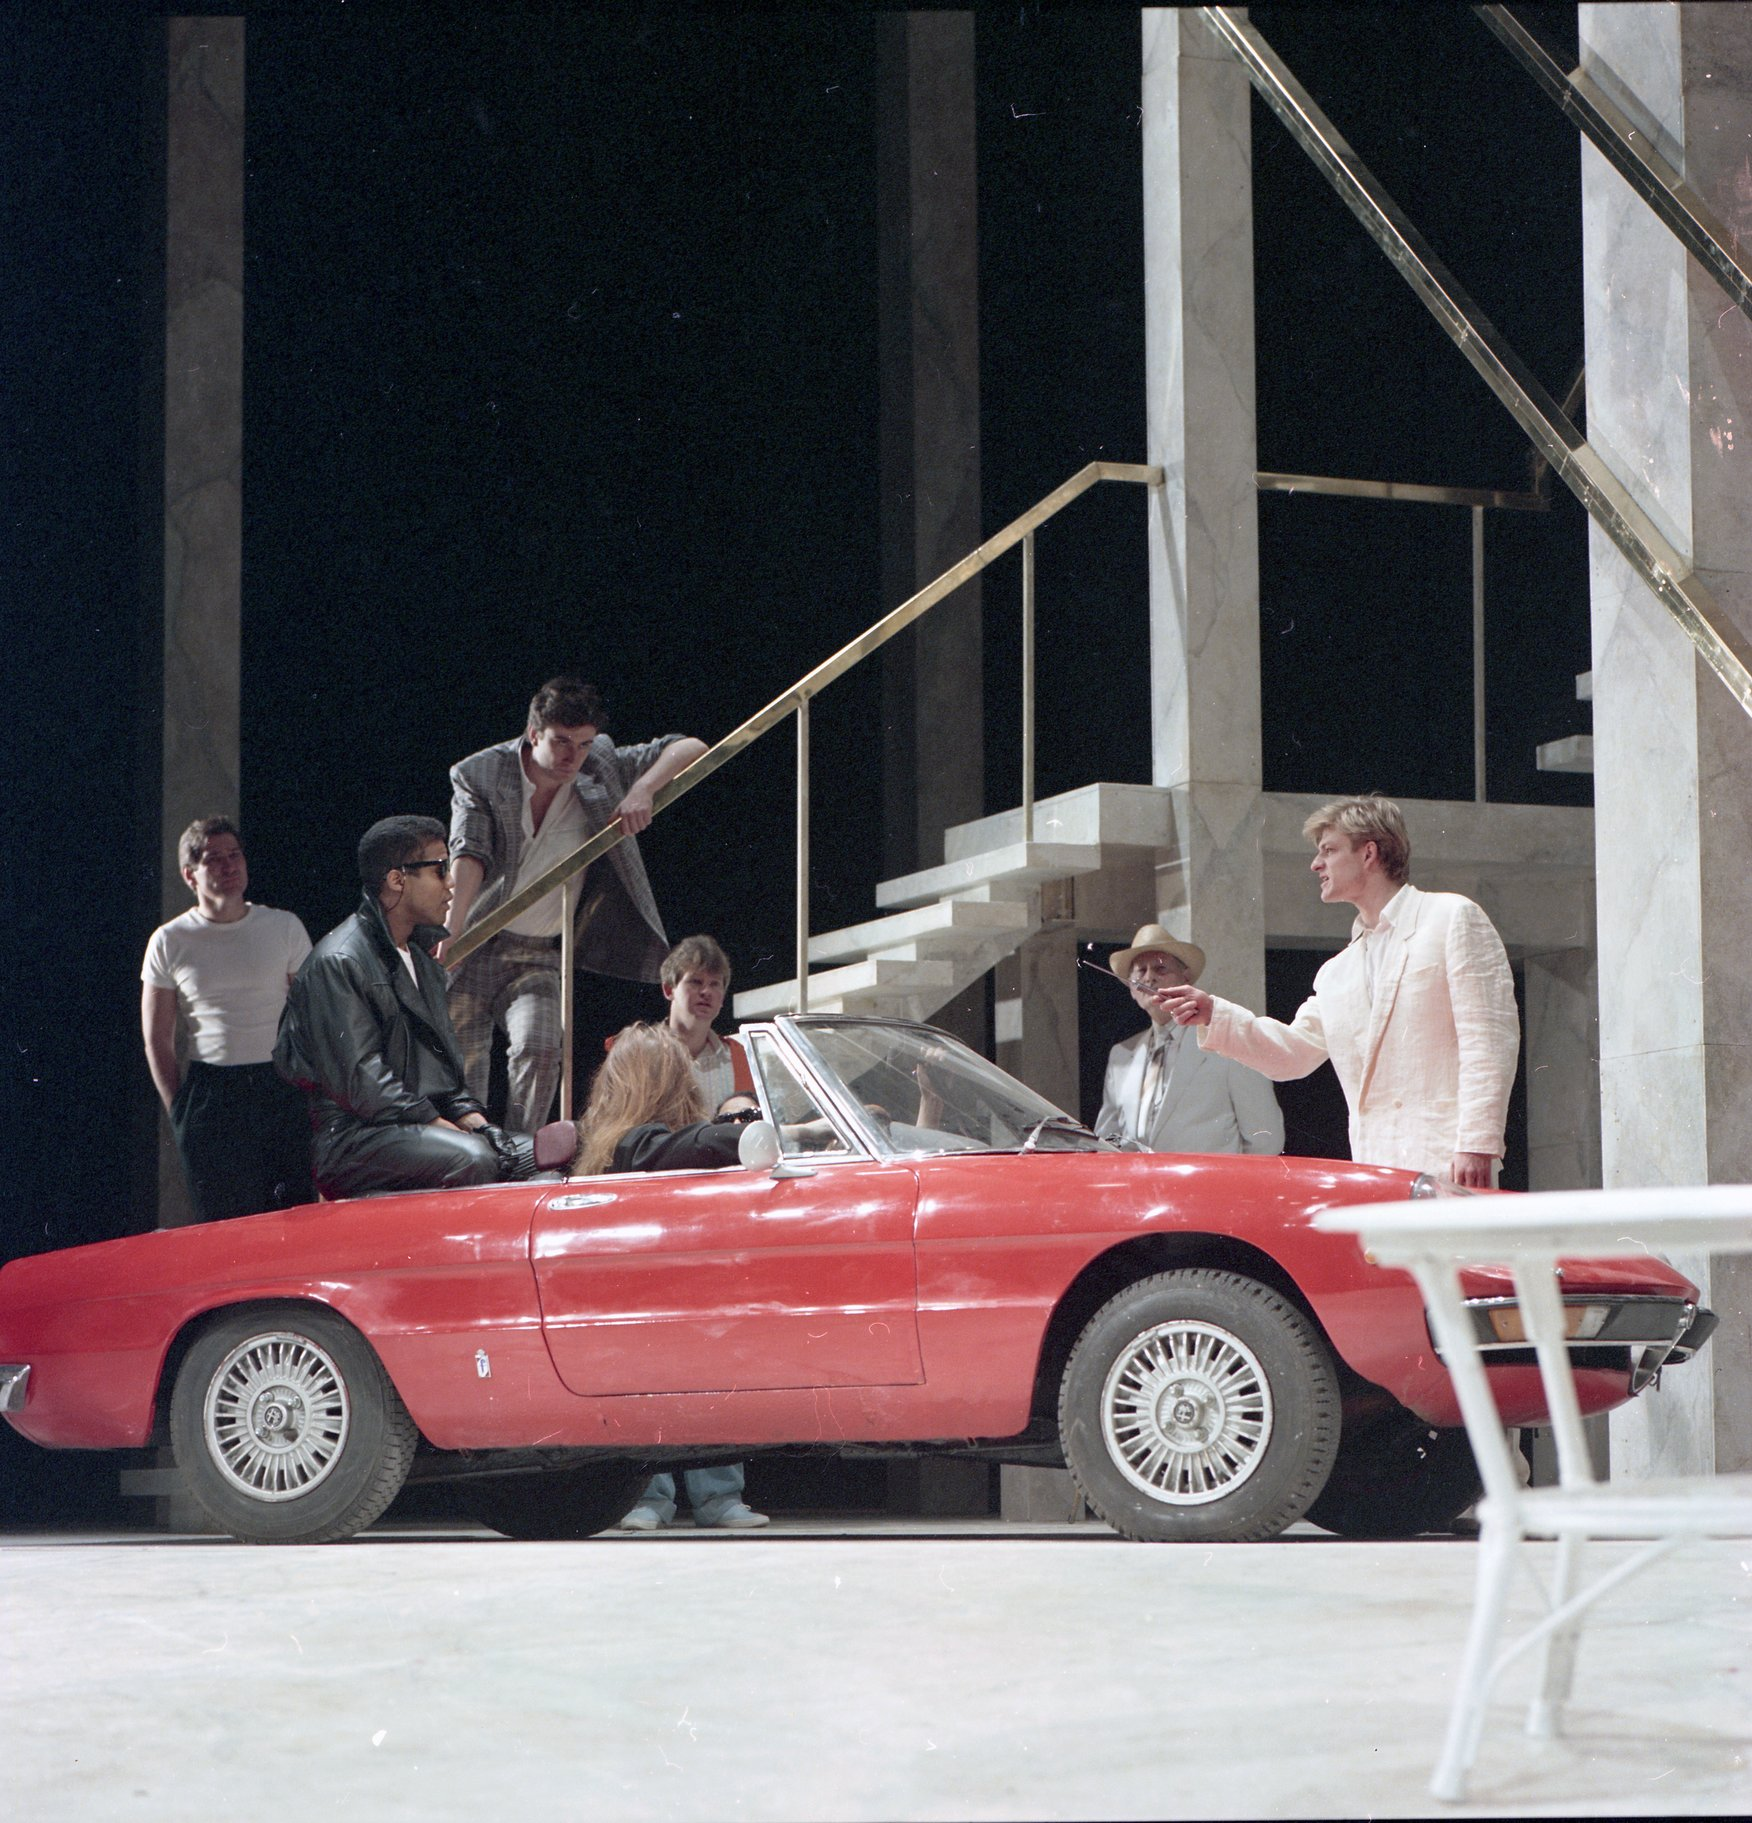 A red car is on stage.